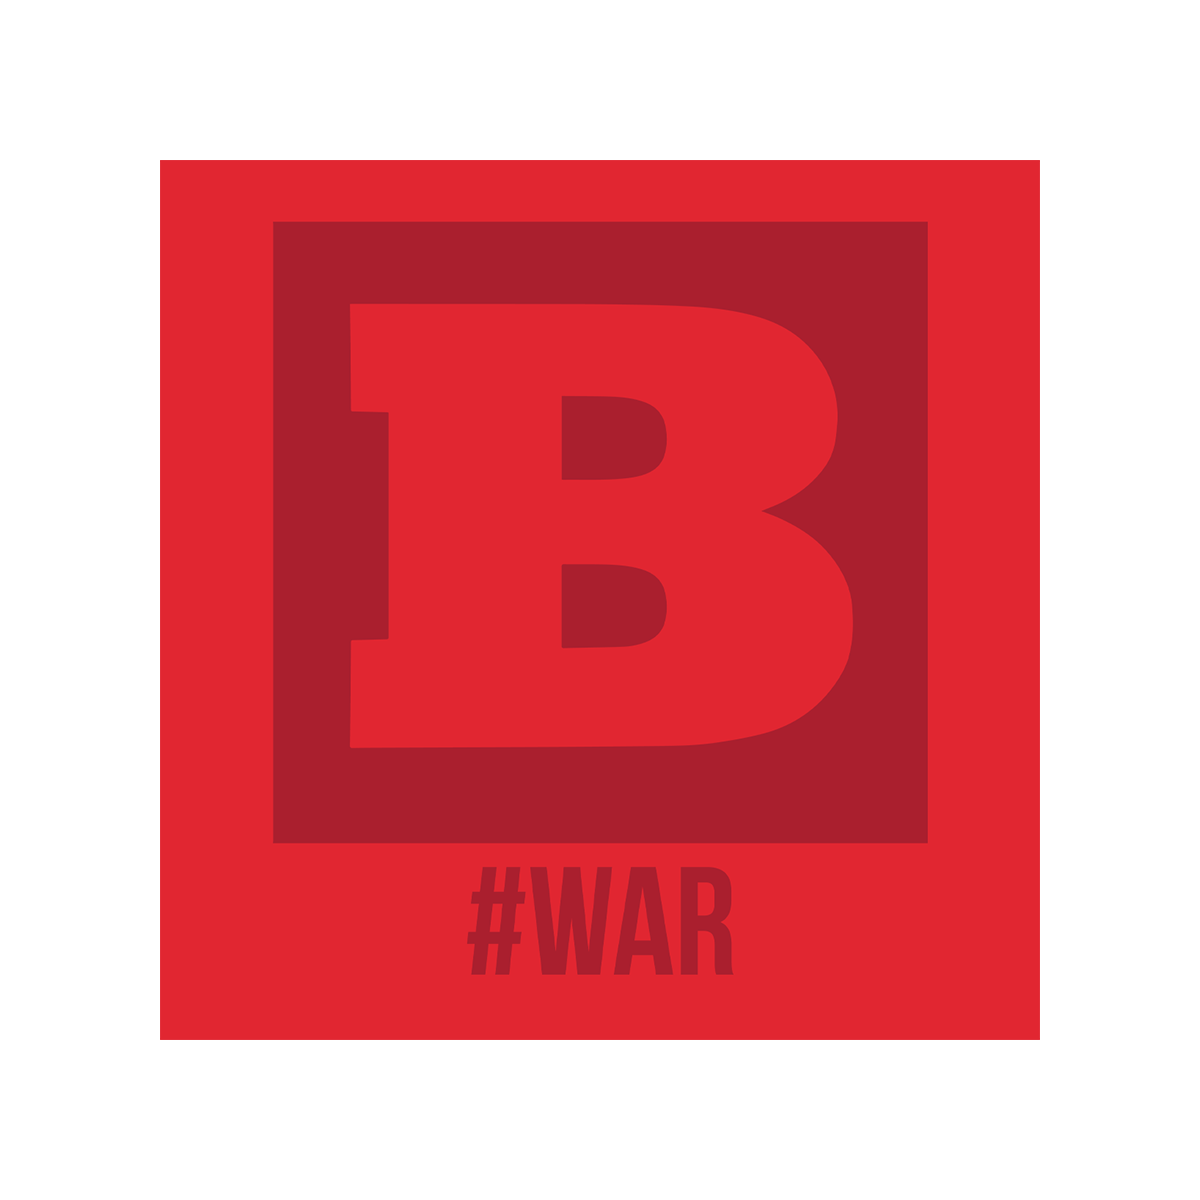 Breitbart #WAR T-Shirt - Red